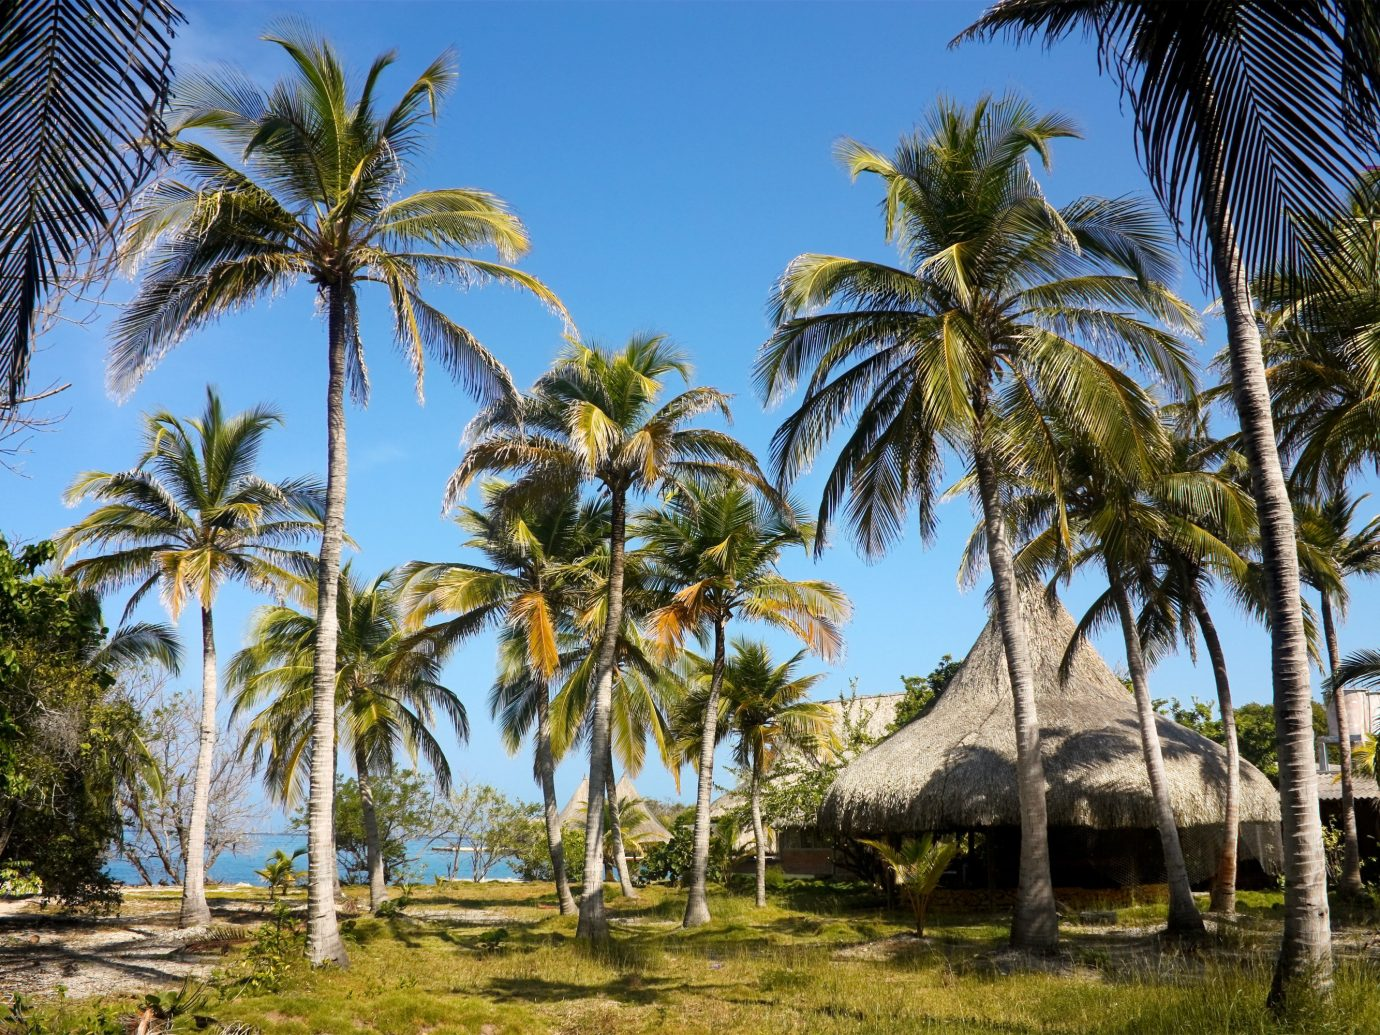 caribbean Secret Getaways Trip Ideas tree palm outdoor plant sky grass palm tree arecales Resort tropics tourist attraction date palm tourism vacation leisure attalea speciosa area shade lined surrounded